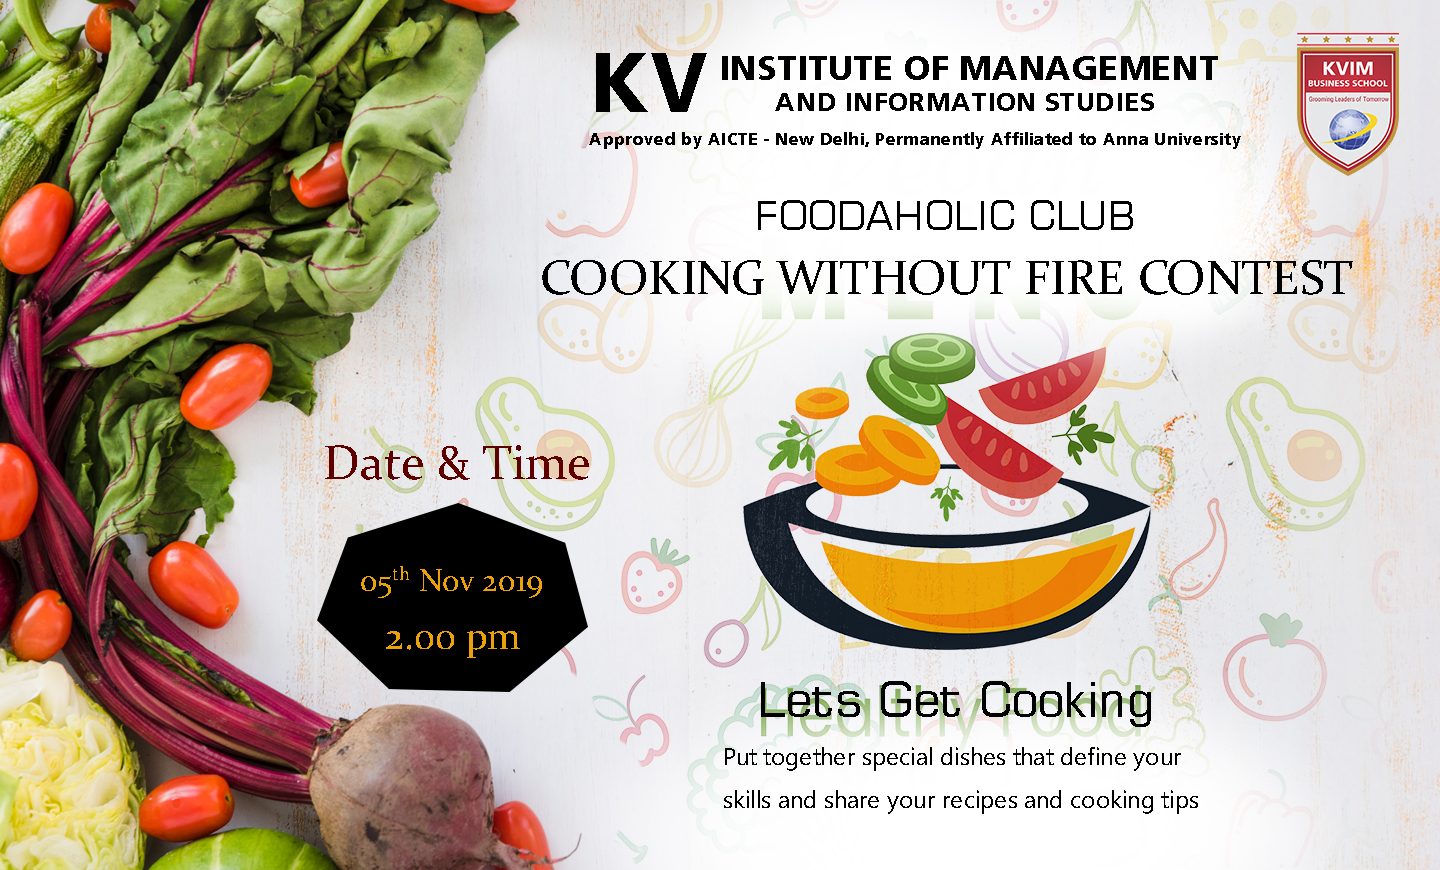 kvimis cooking without fire contest